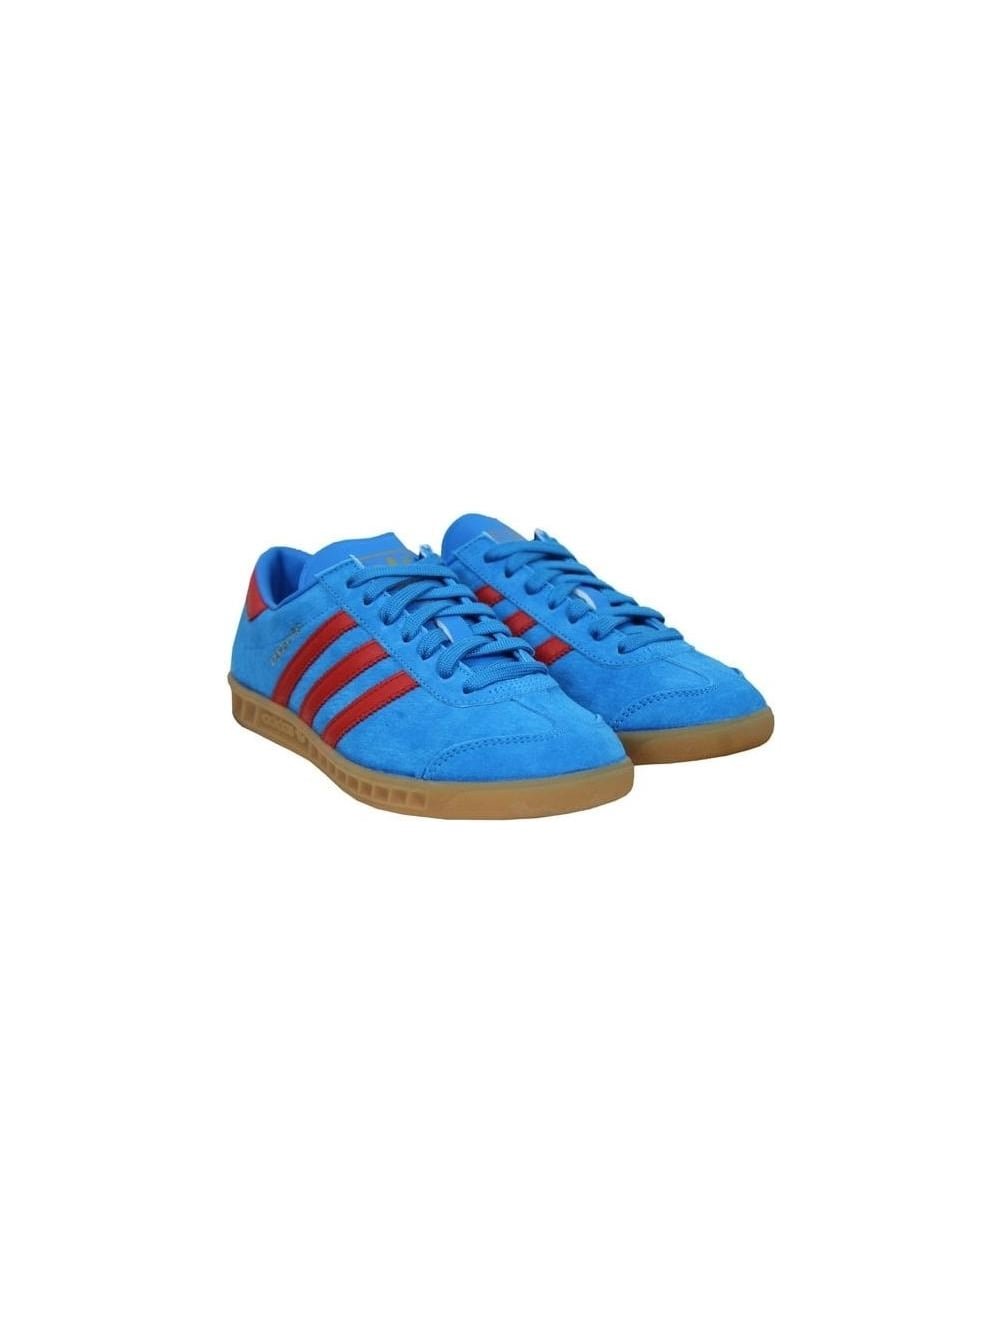 aplausos Hambre Pais de Ciudadania  adidas Hamburg in Solar Blue - Northern Threads